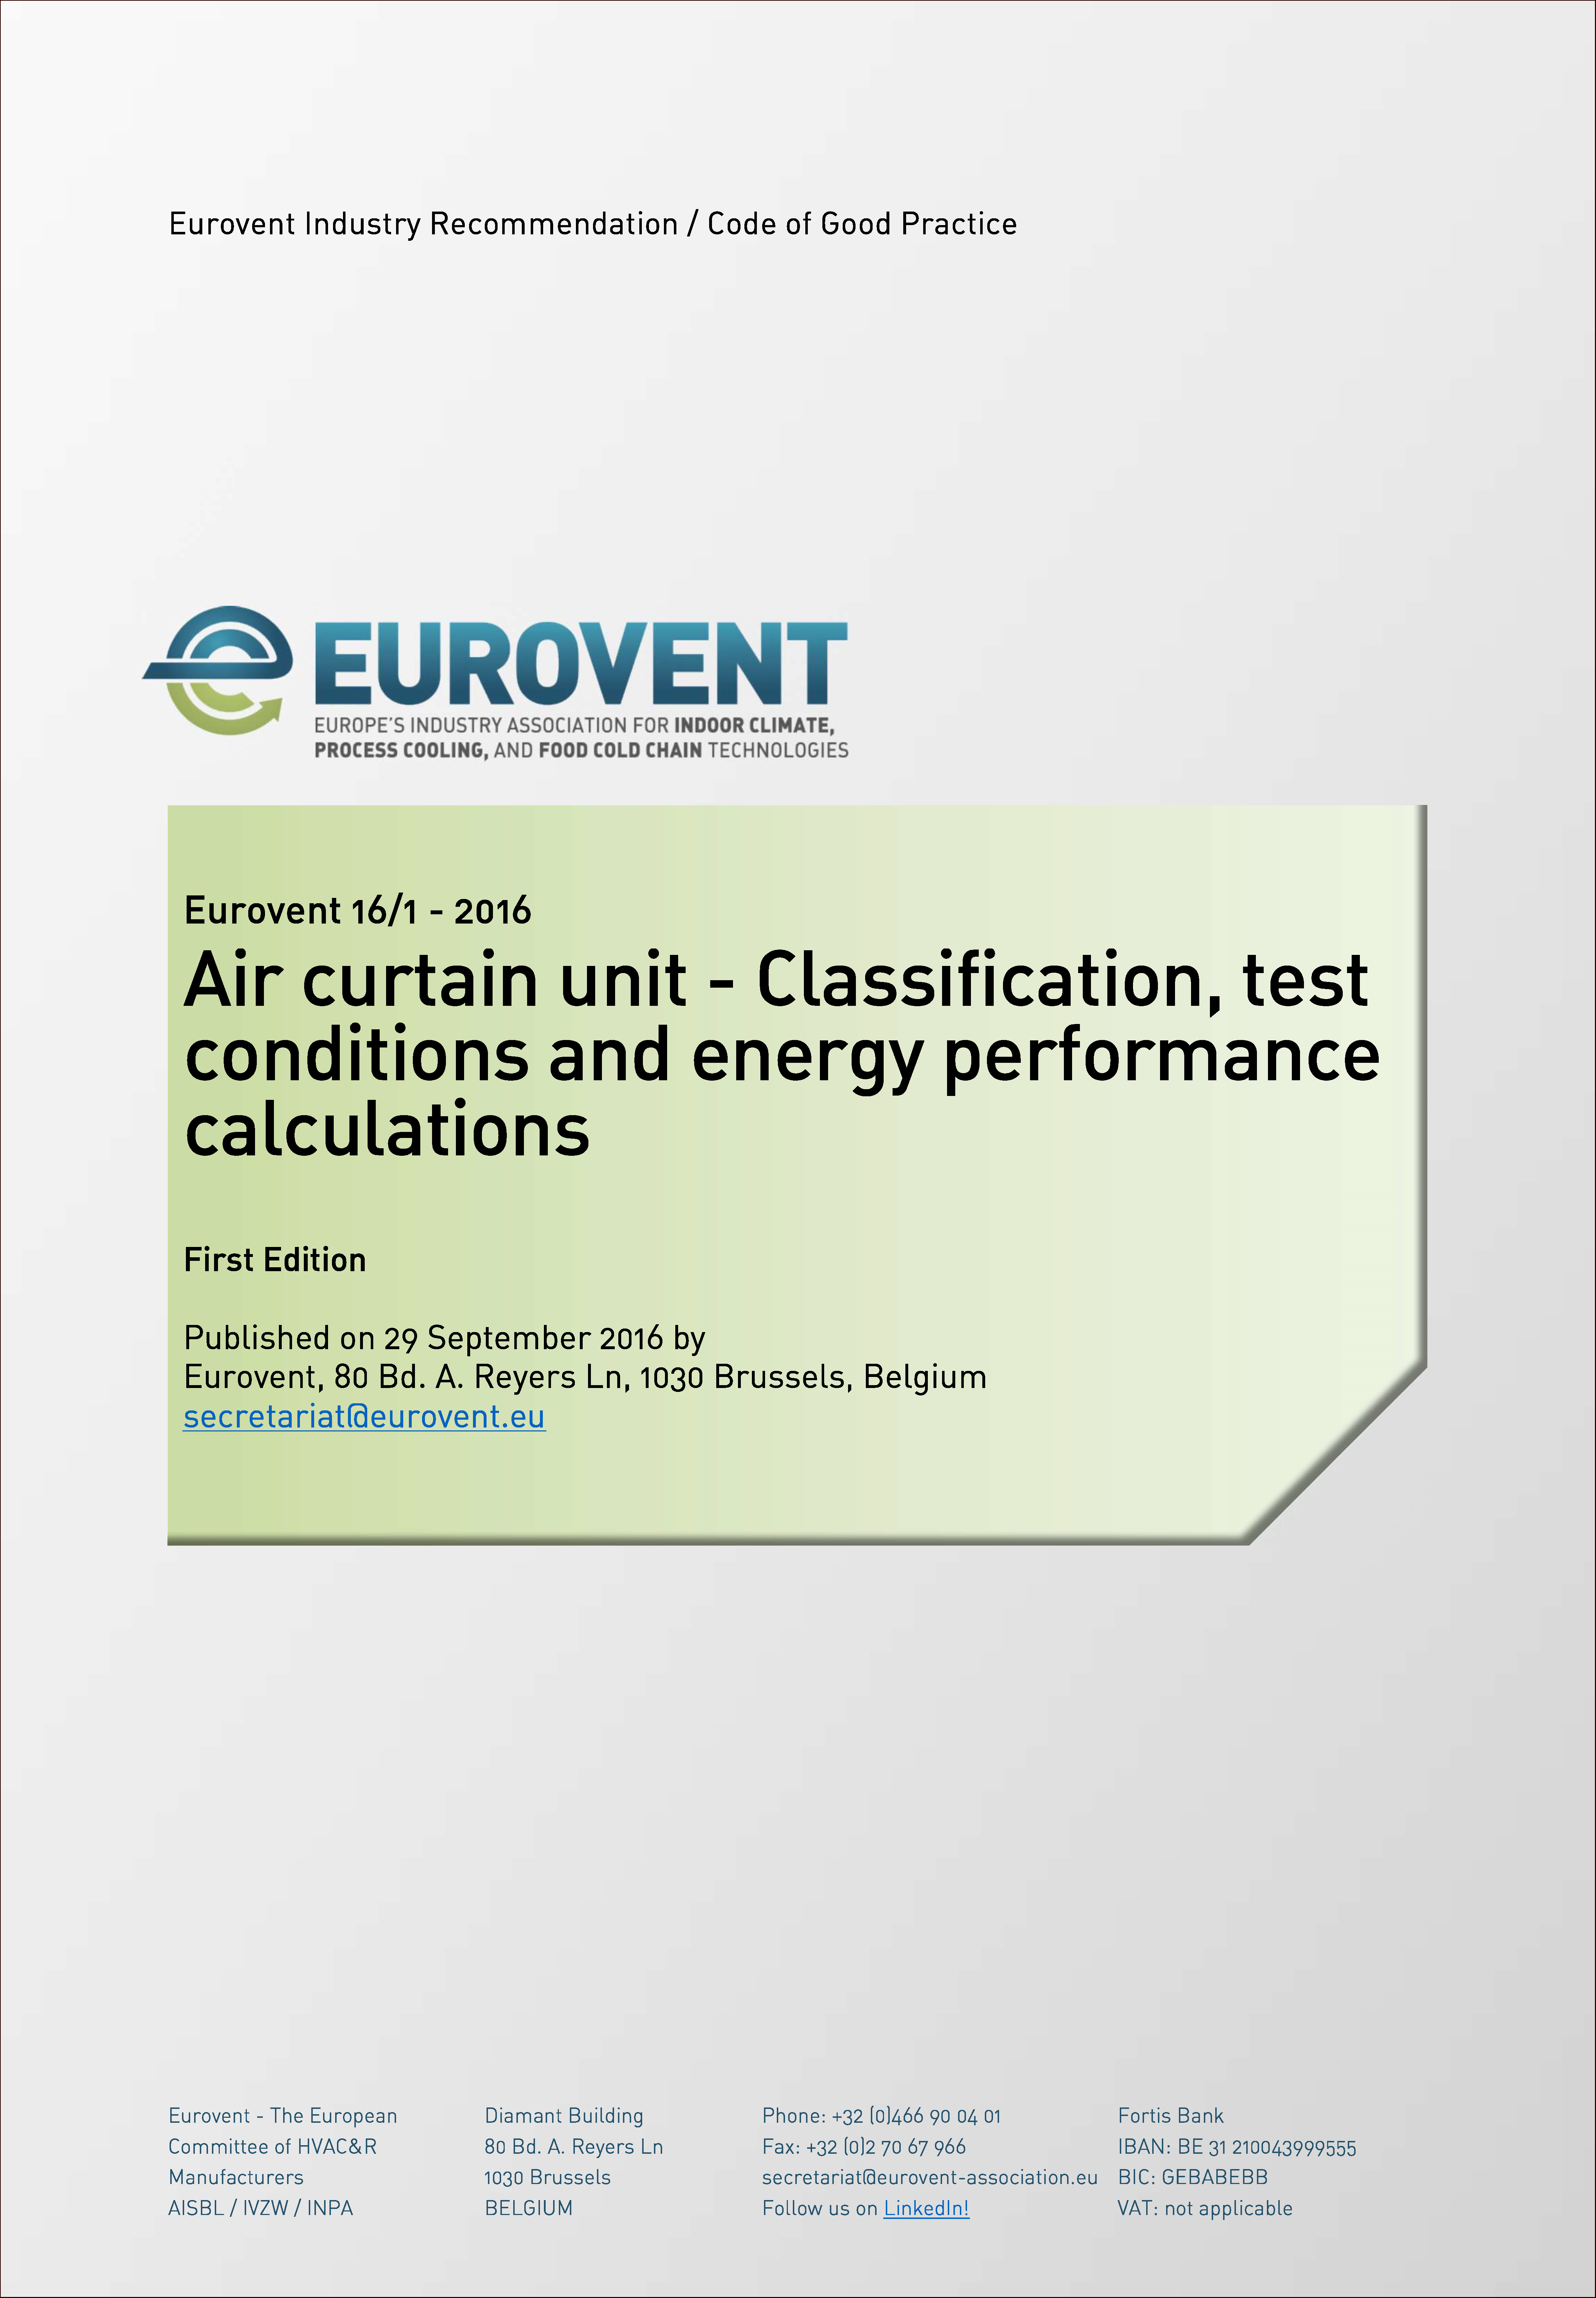 2016 - Air curtain unit - Classification, test conditions and energy performance calculations